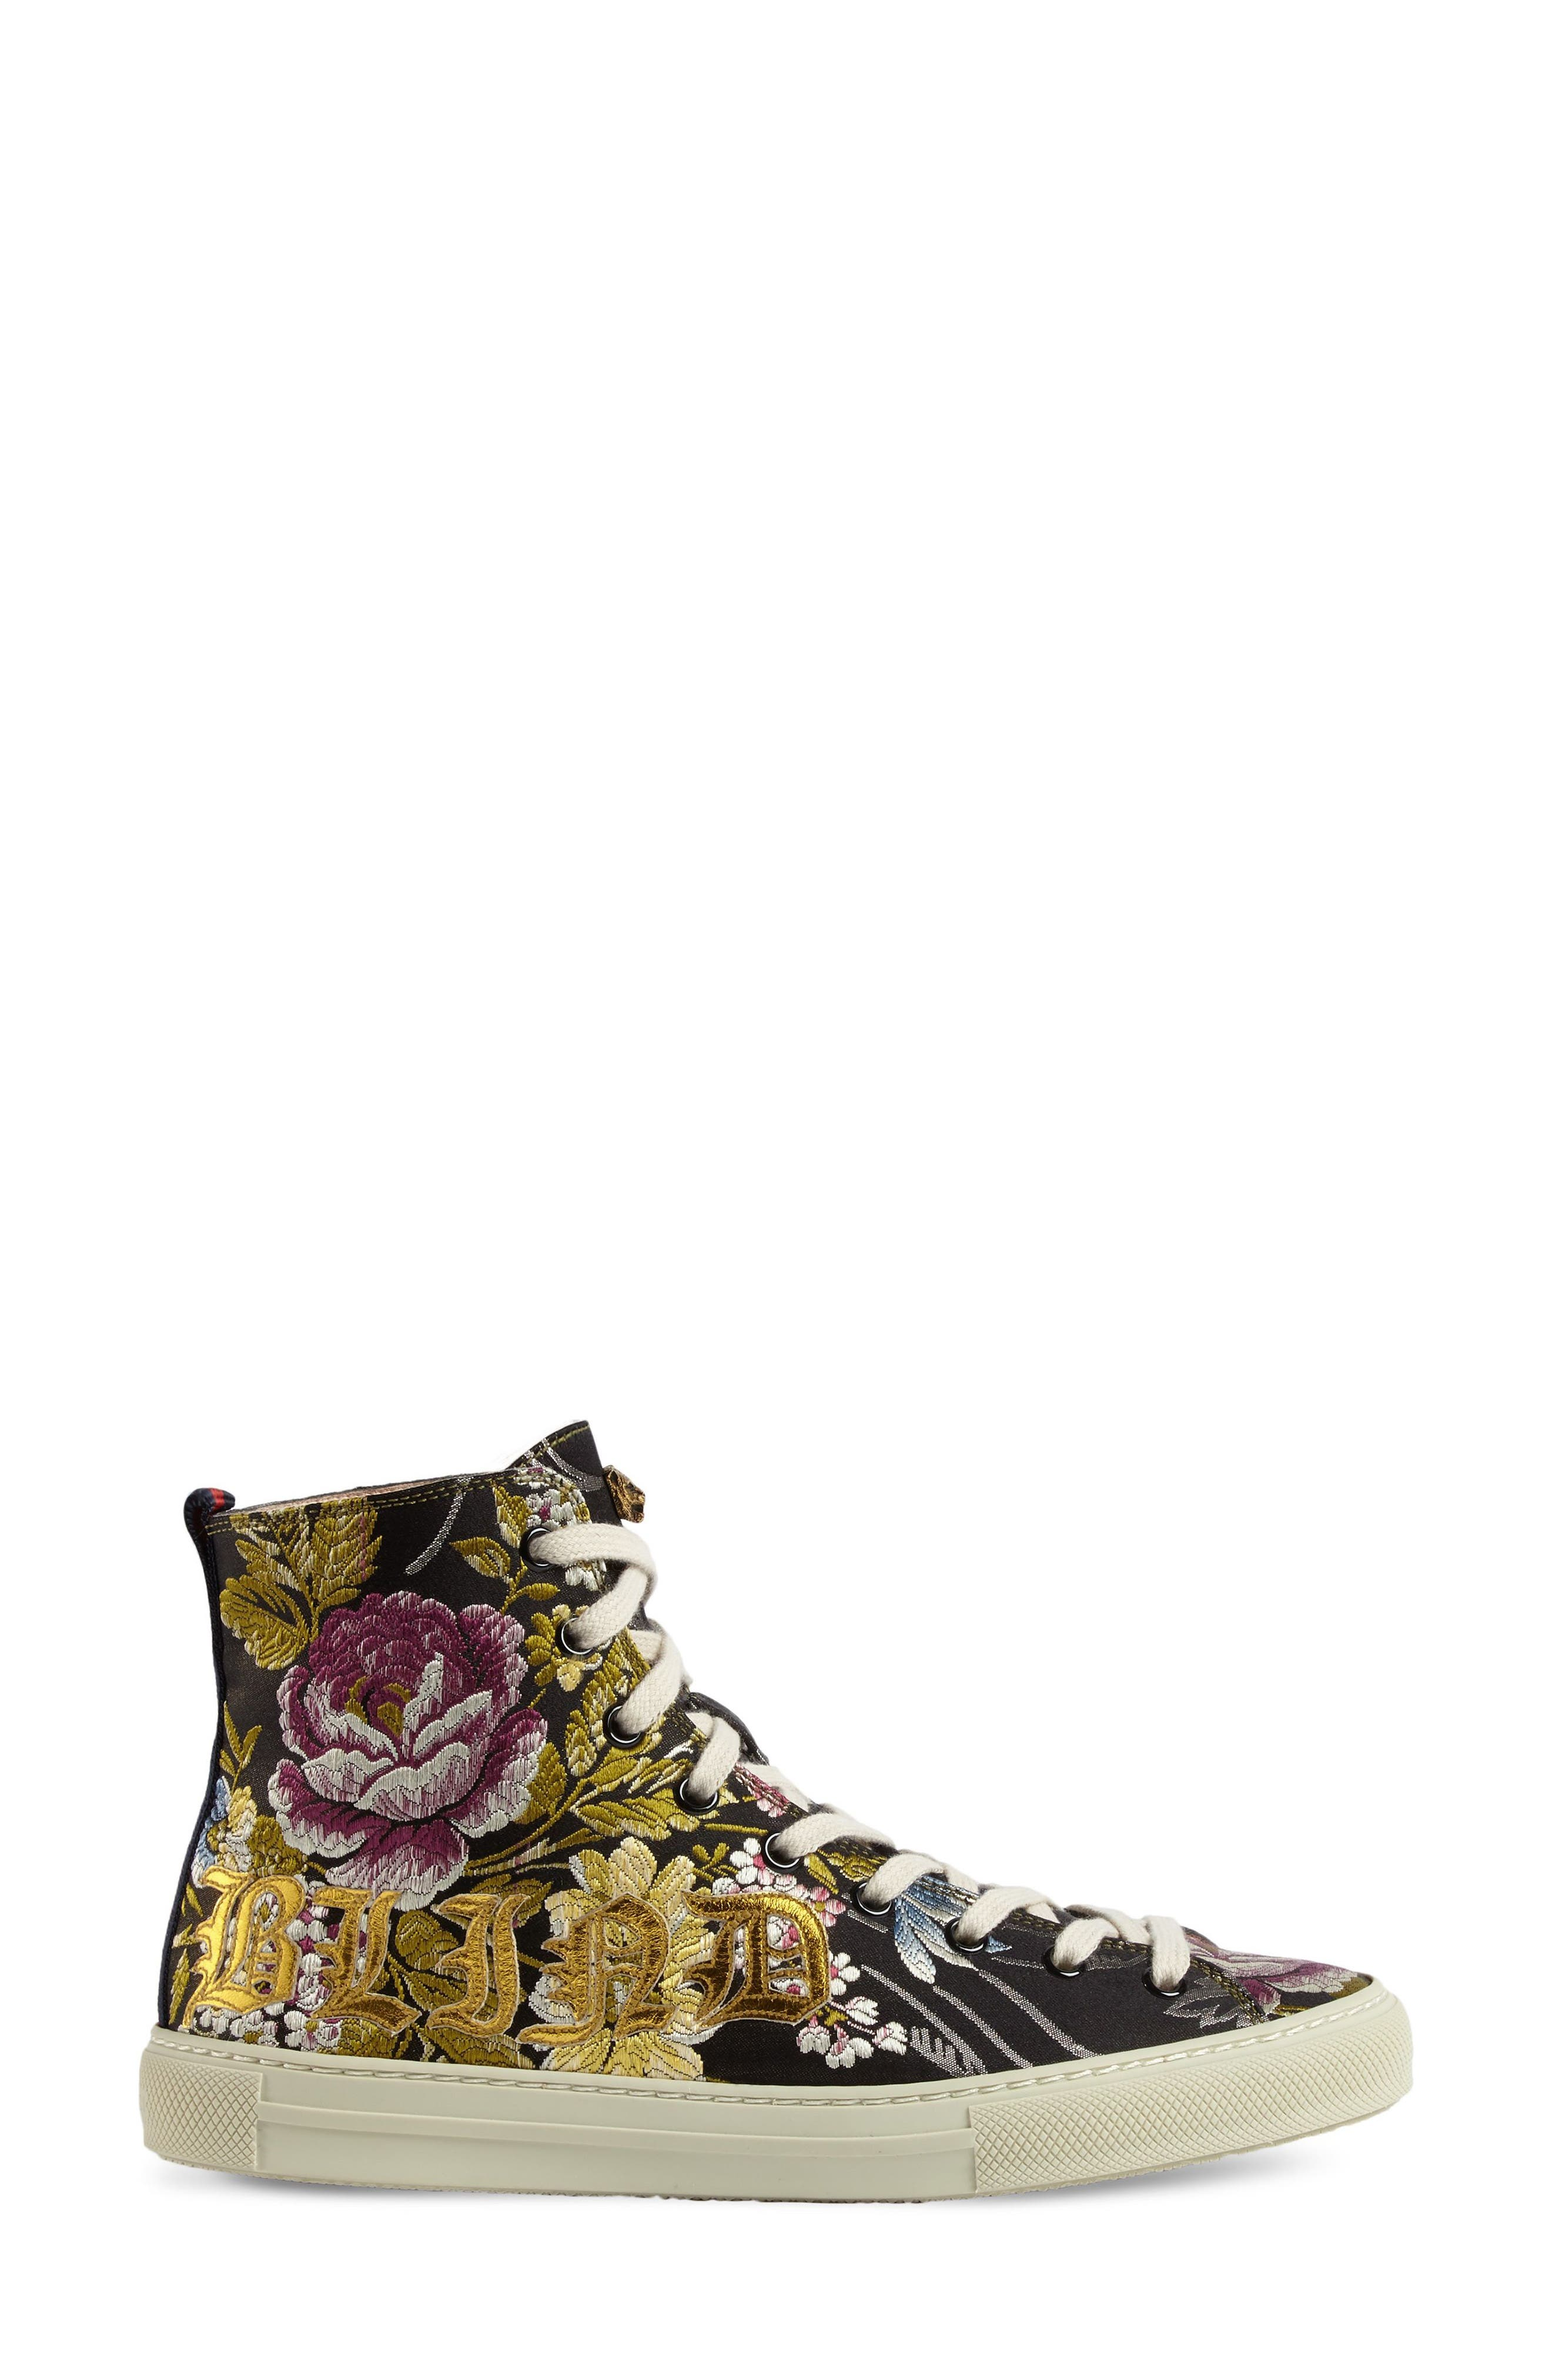 Gucci Floral High Top Sneaker (Women)